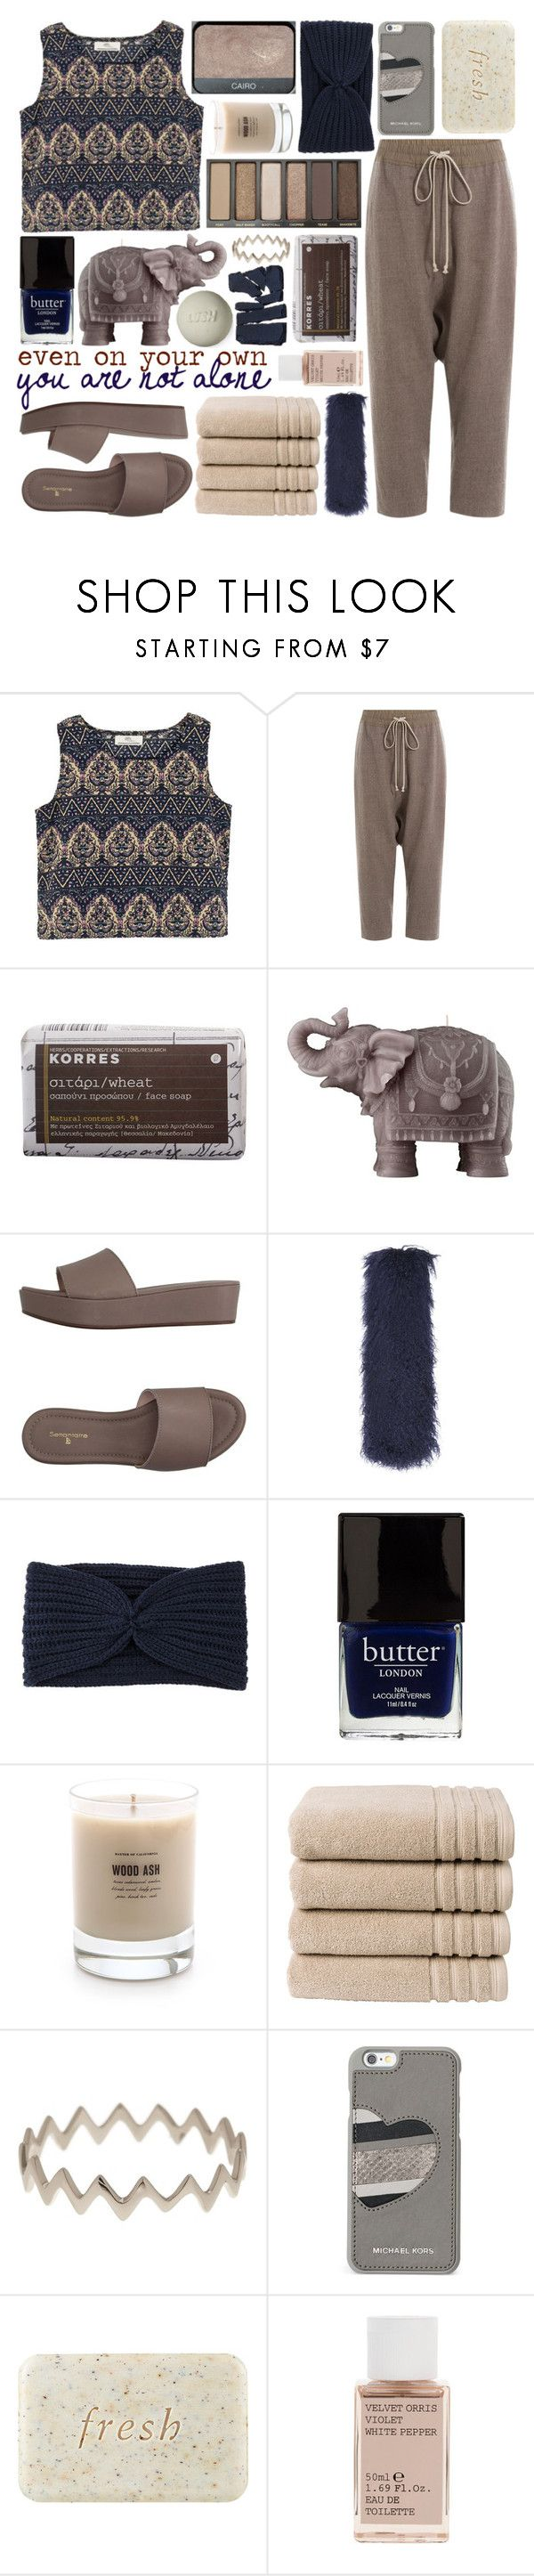 """""""A HEAVY LEAF TO TURN"""" by glowing-eyes ❤ liked on Polyvore featuring Rick Owens, Korres, Mario Luca Giusti, Settantatre LR, Topshop, Hat Attack, Butter London, NARS Cosmetics, Baxter of California and Christy"""